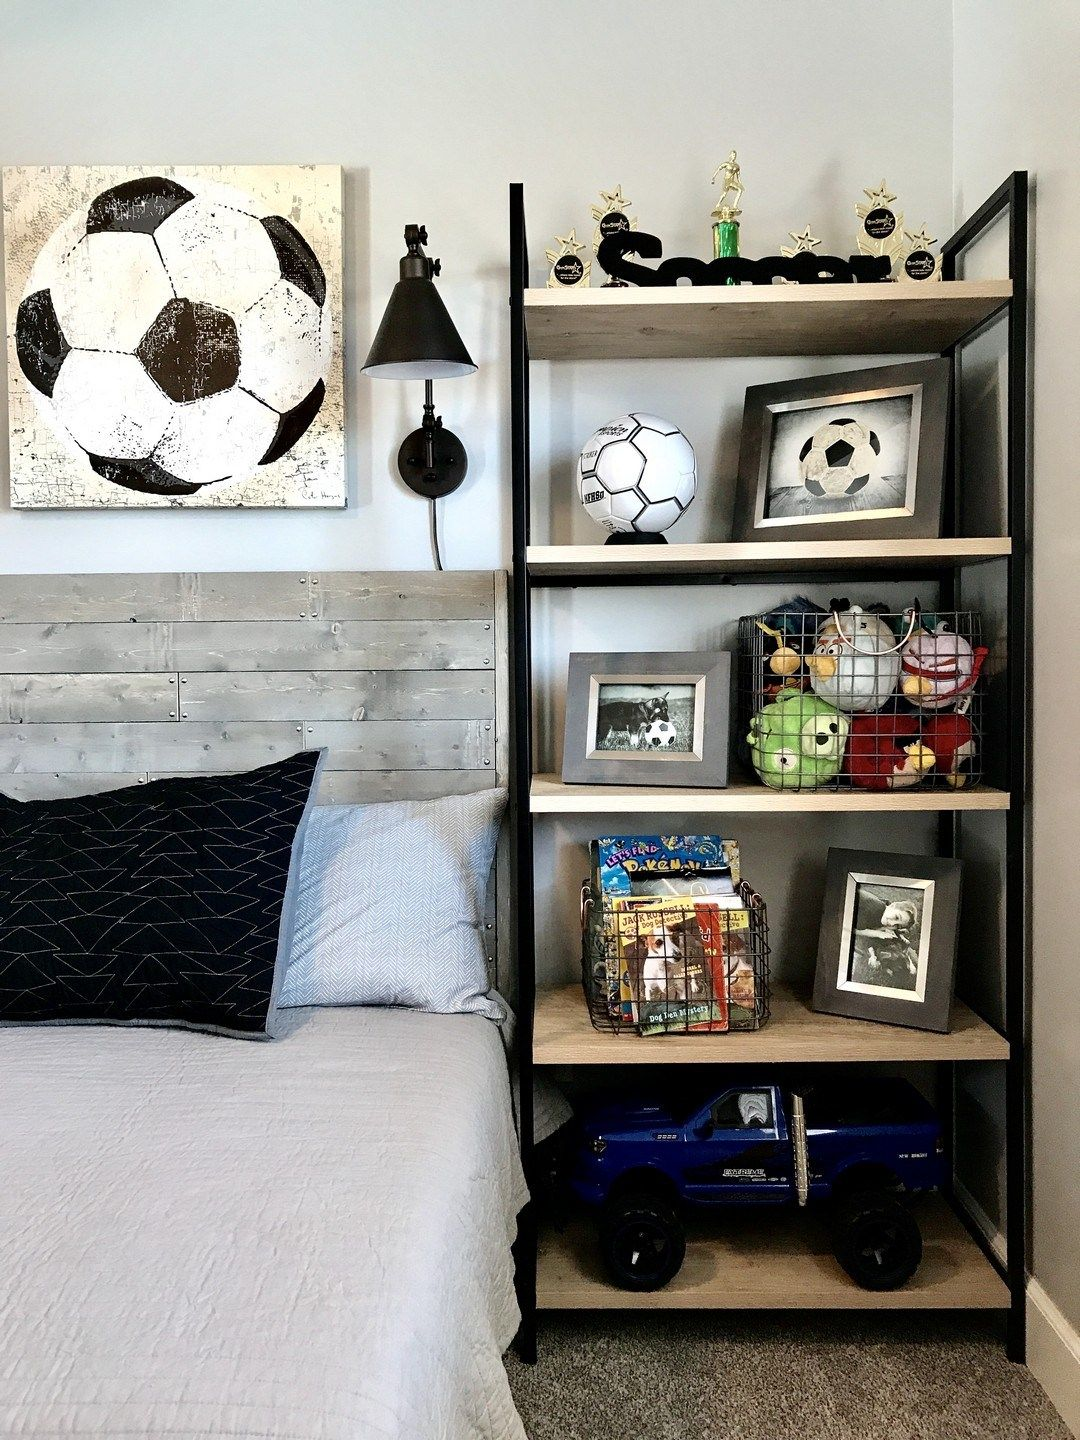 Stylish Soccer Themed Bedroom Design For Boys 3 Decomagz Soccer Themed Bedroom Boys Room Decor Bedroom Themes